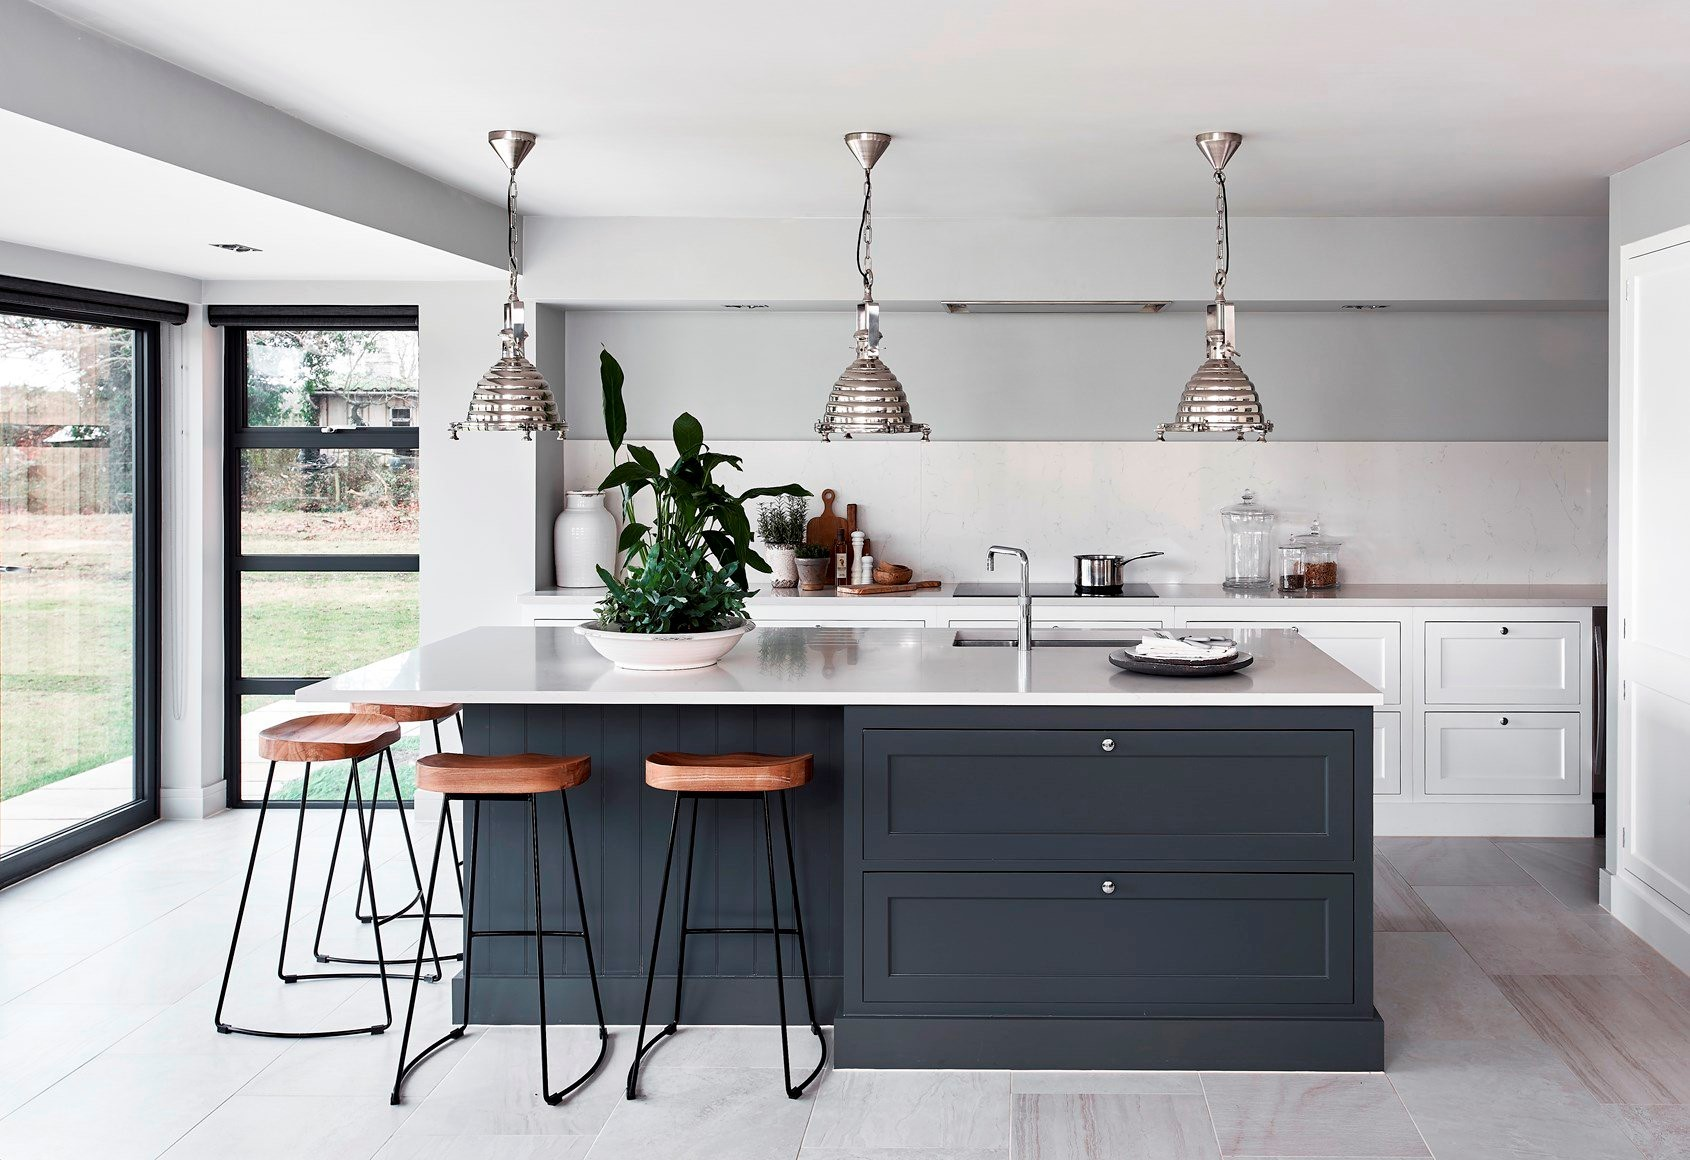 COUNTERTOPS KITCHEN IDEAS FOR YOUR HOME